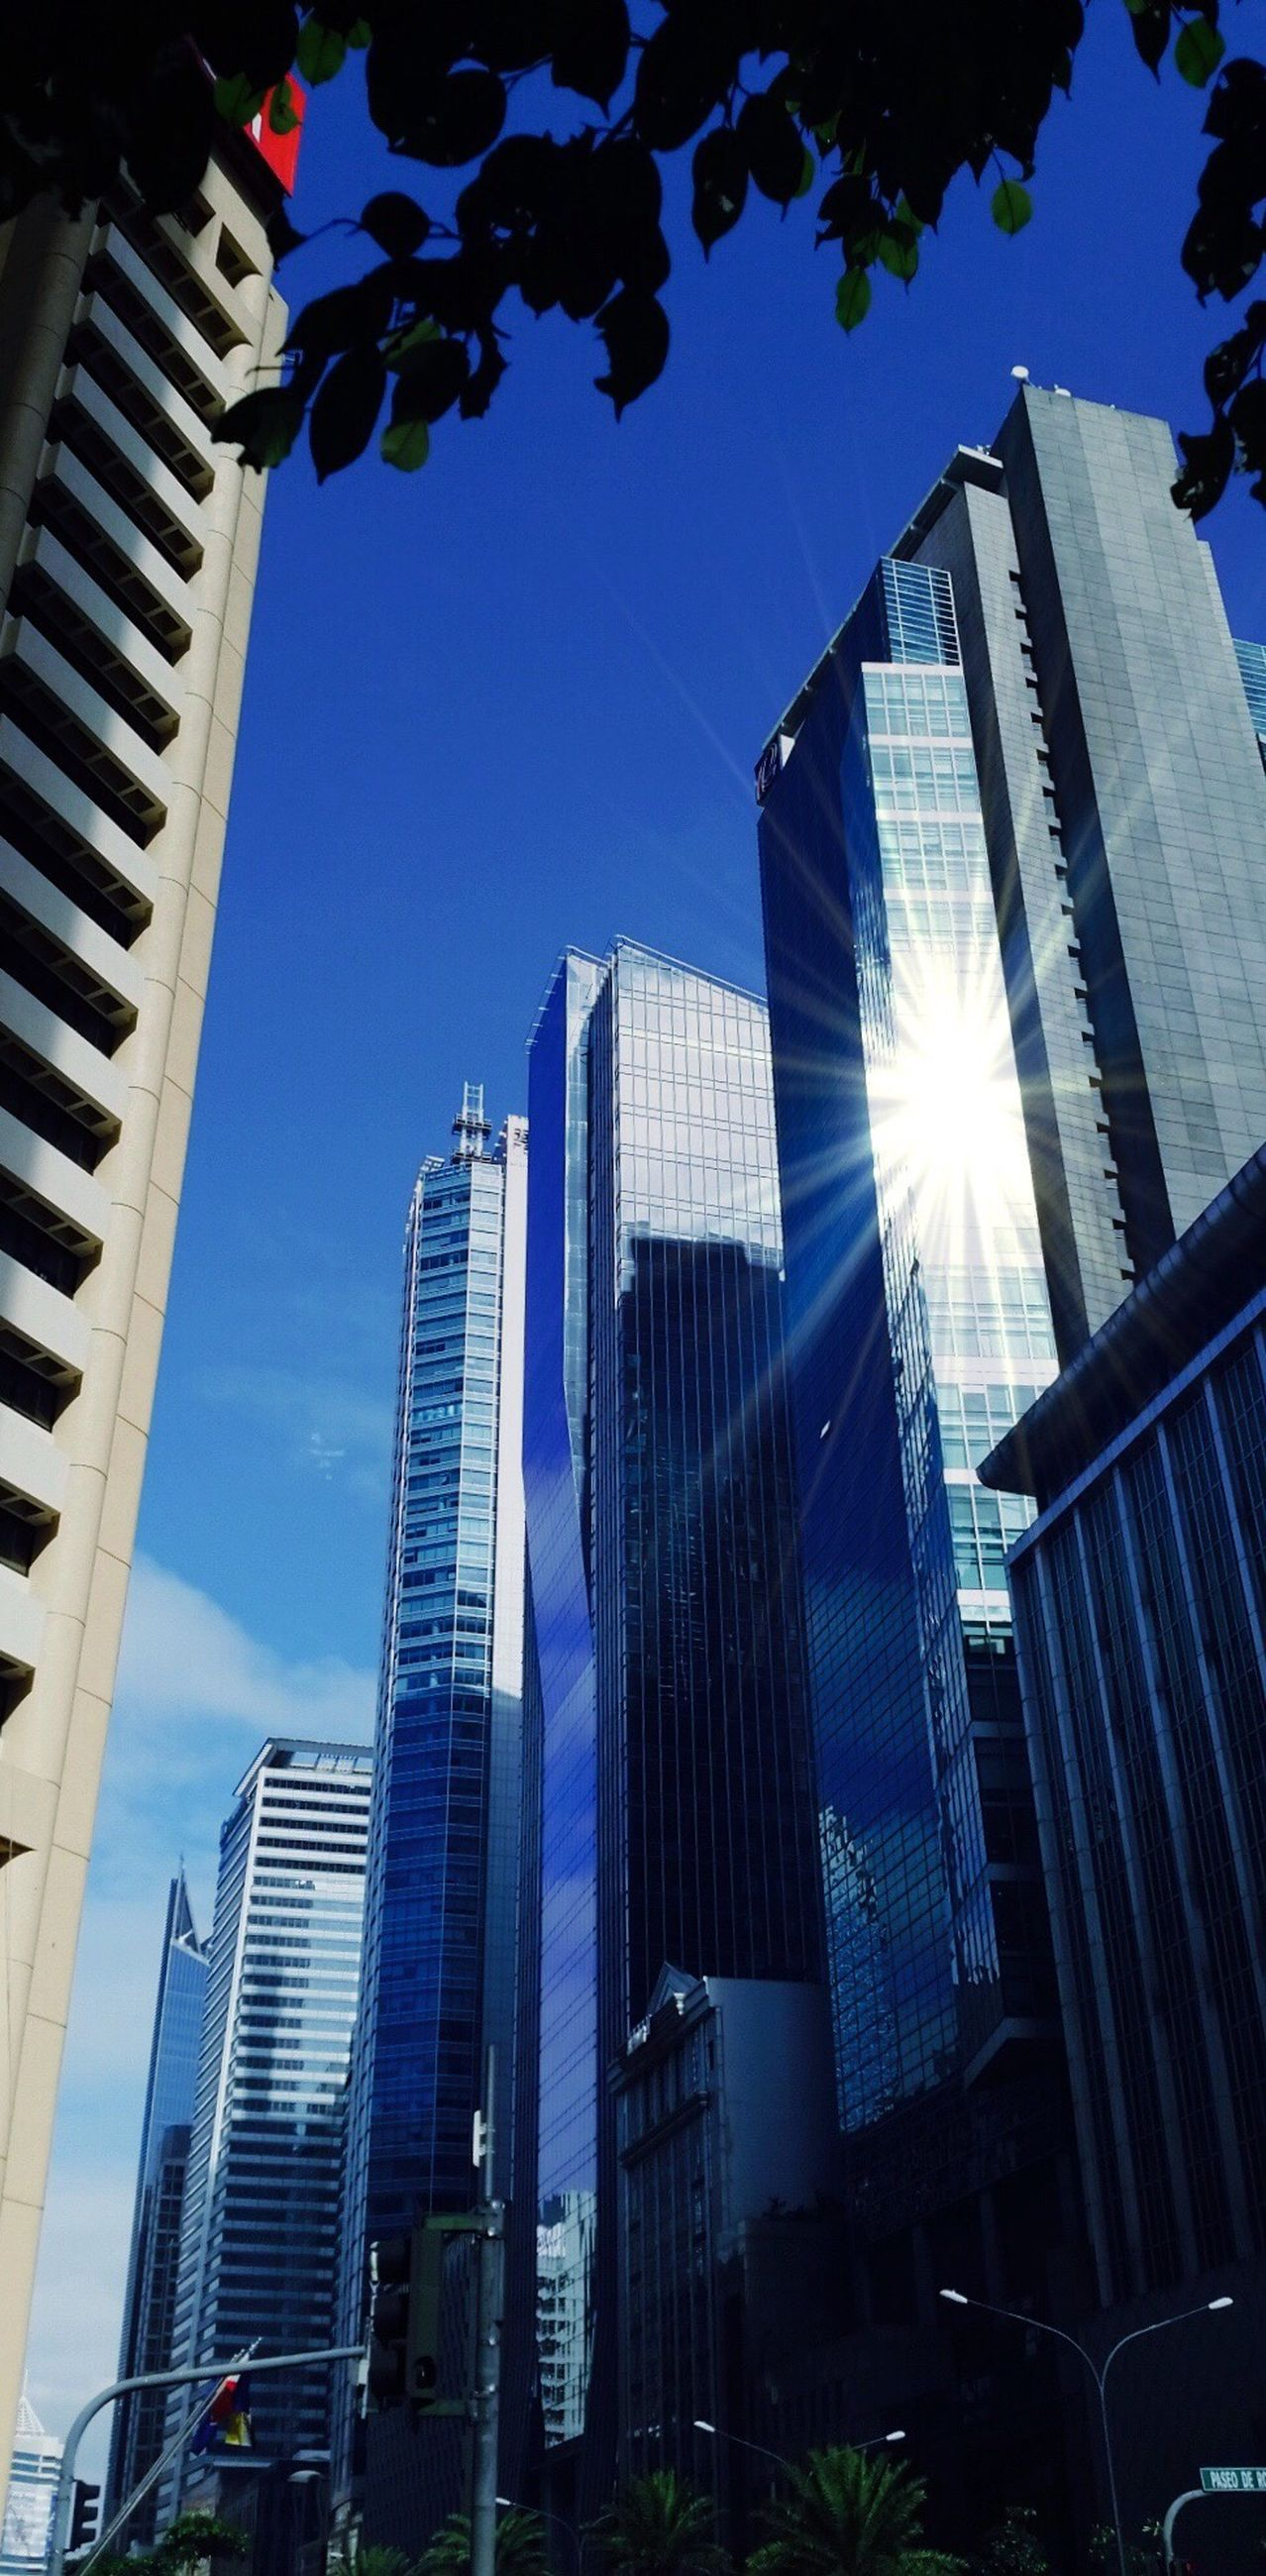 building exterior, architecture, skyscraper, city, built structure, tall - high, modern, office building, tower, low angle view, sun, sunlight, financial district, urban skyline, city life, sunbeam, building, clear sky, tall, sky